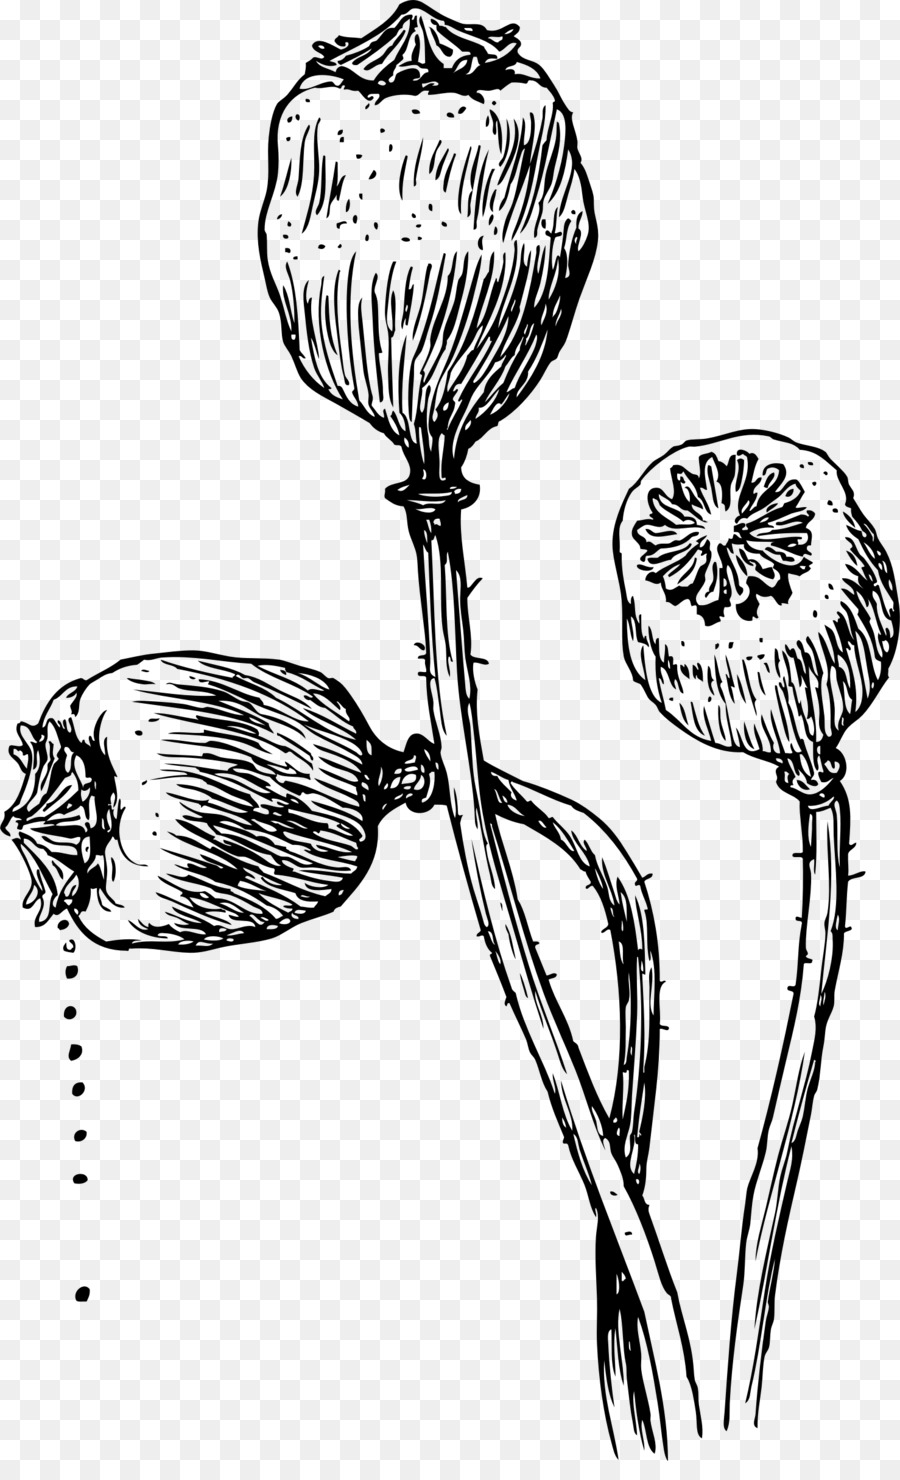 Opium Poppy Drawing Poppy Seed Poppy Png Download 14782400